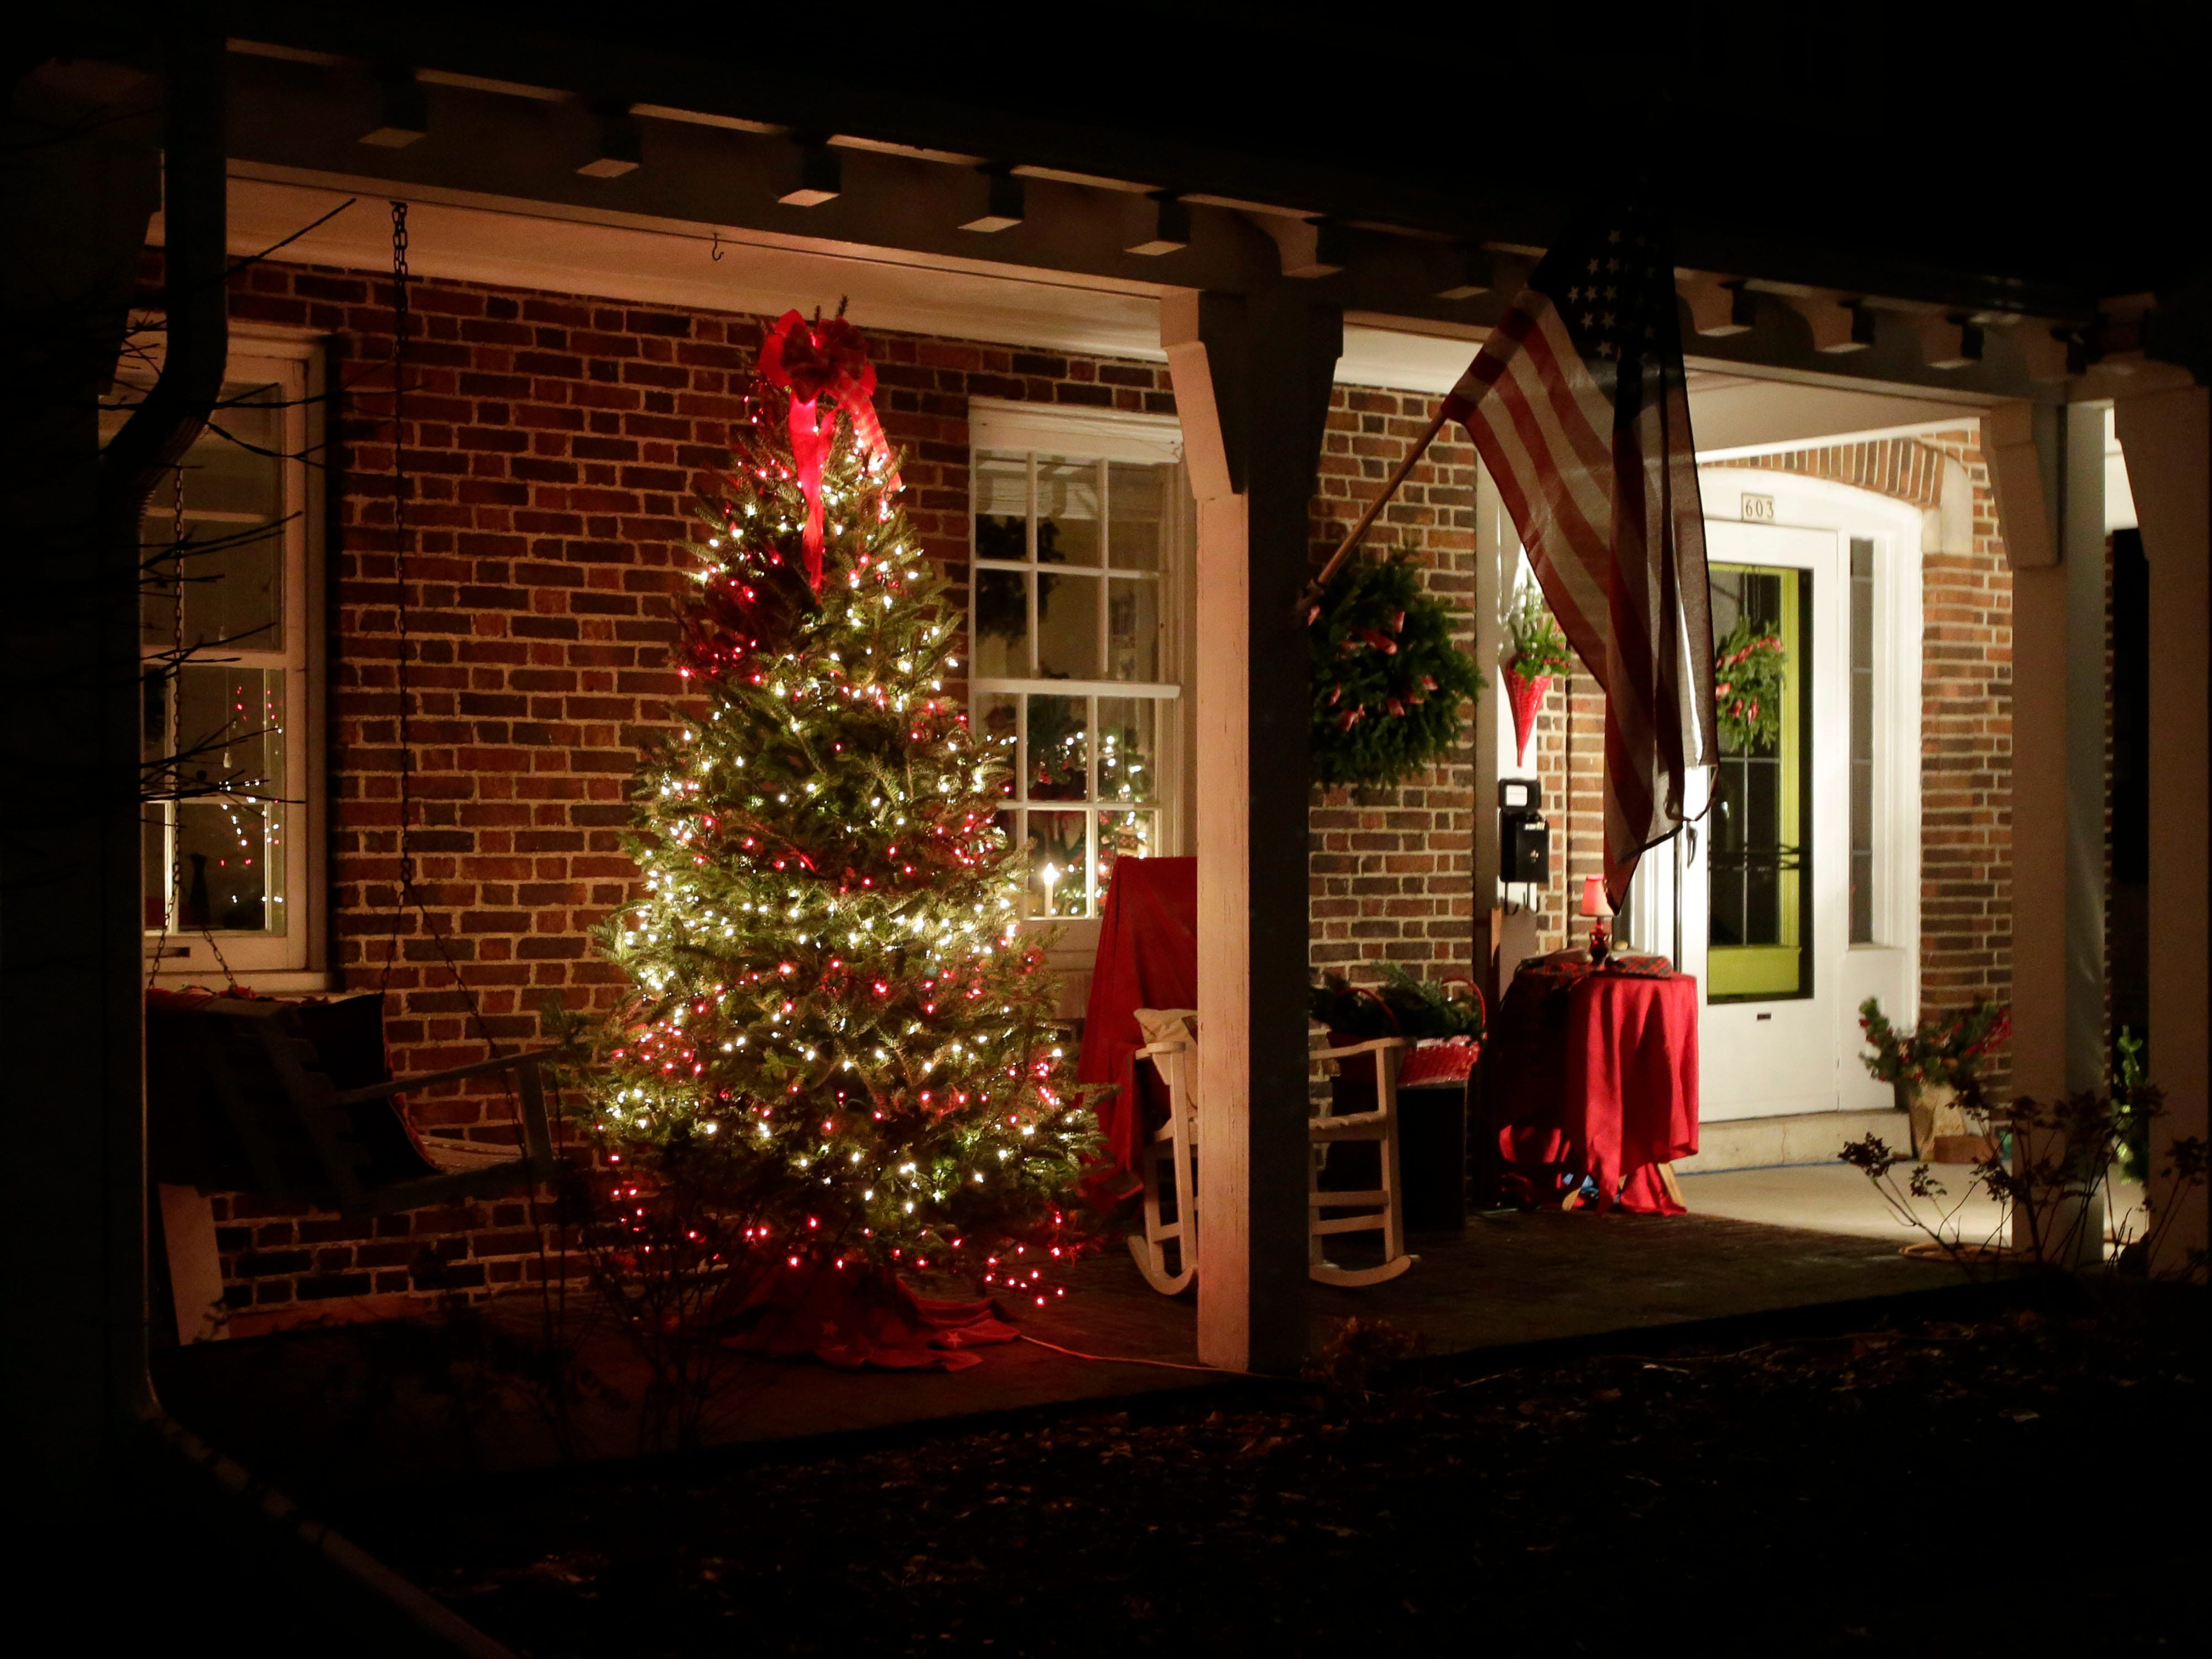 A home near 6th and Superior features a decorated tree, Wednesday, December 12, 2018, in Sheboygan, Wis.